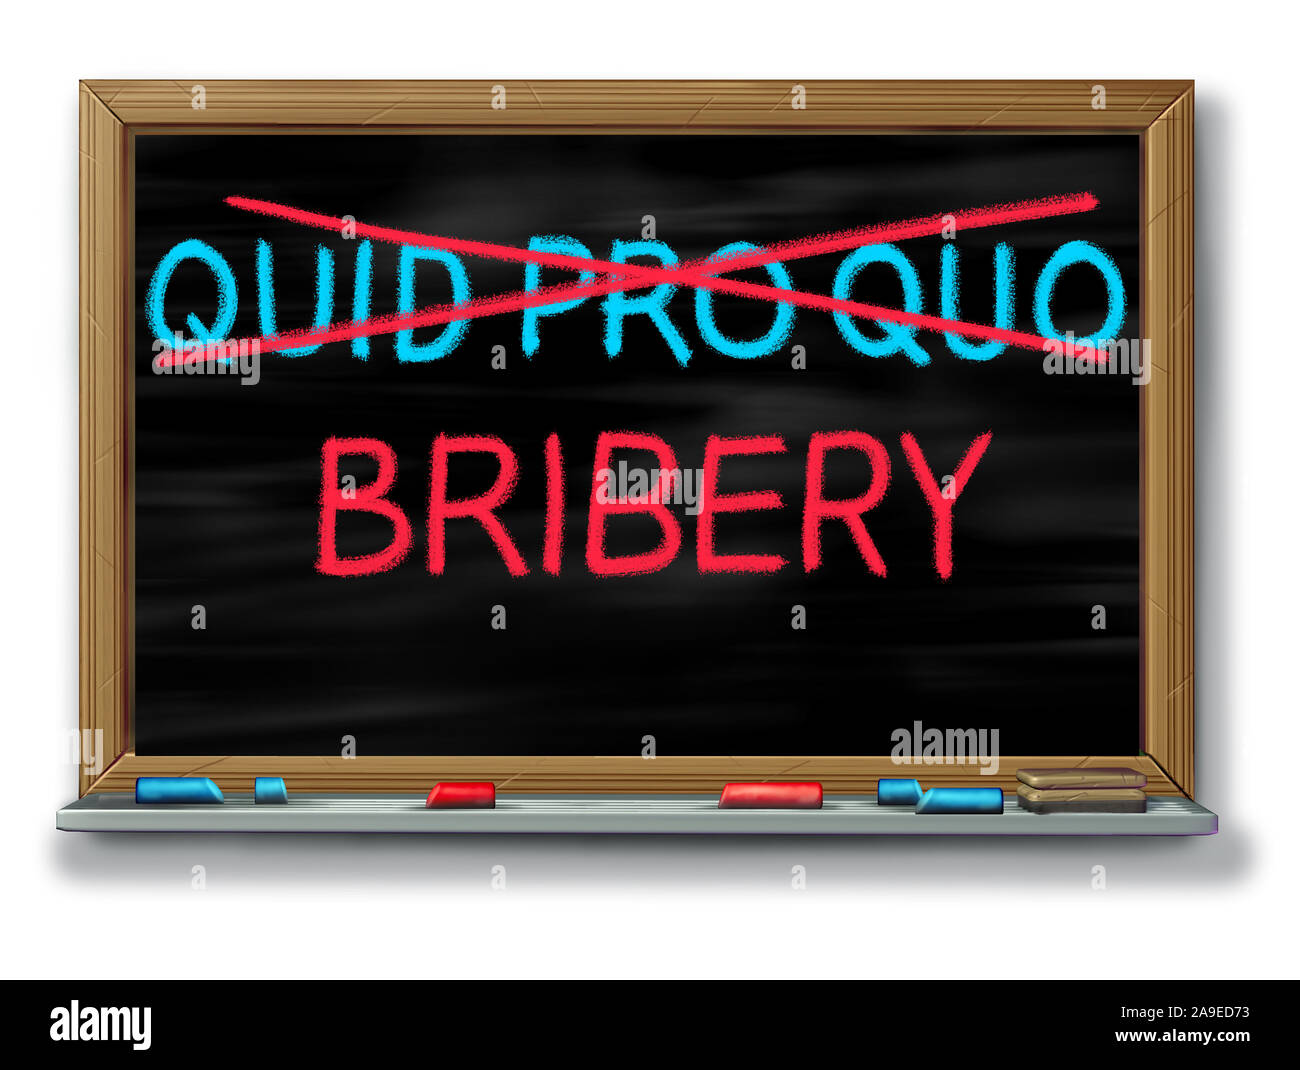 Bribery and political corruption as politics with quid pro quo replaced with another word as an unethical political action in giving something. Stock Photo